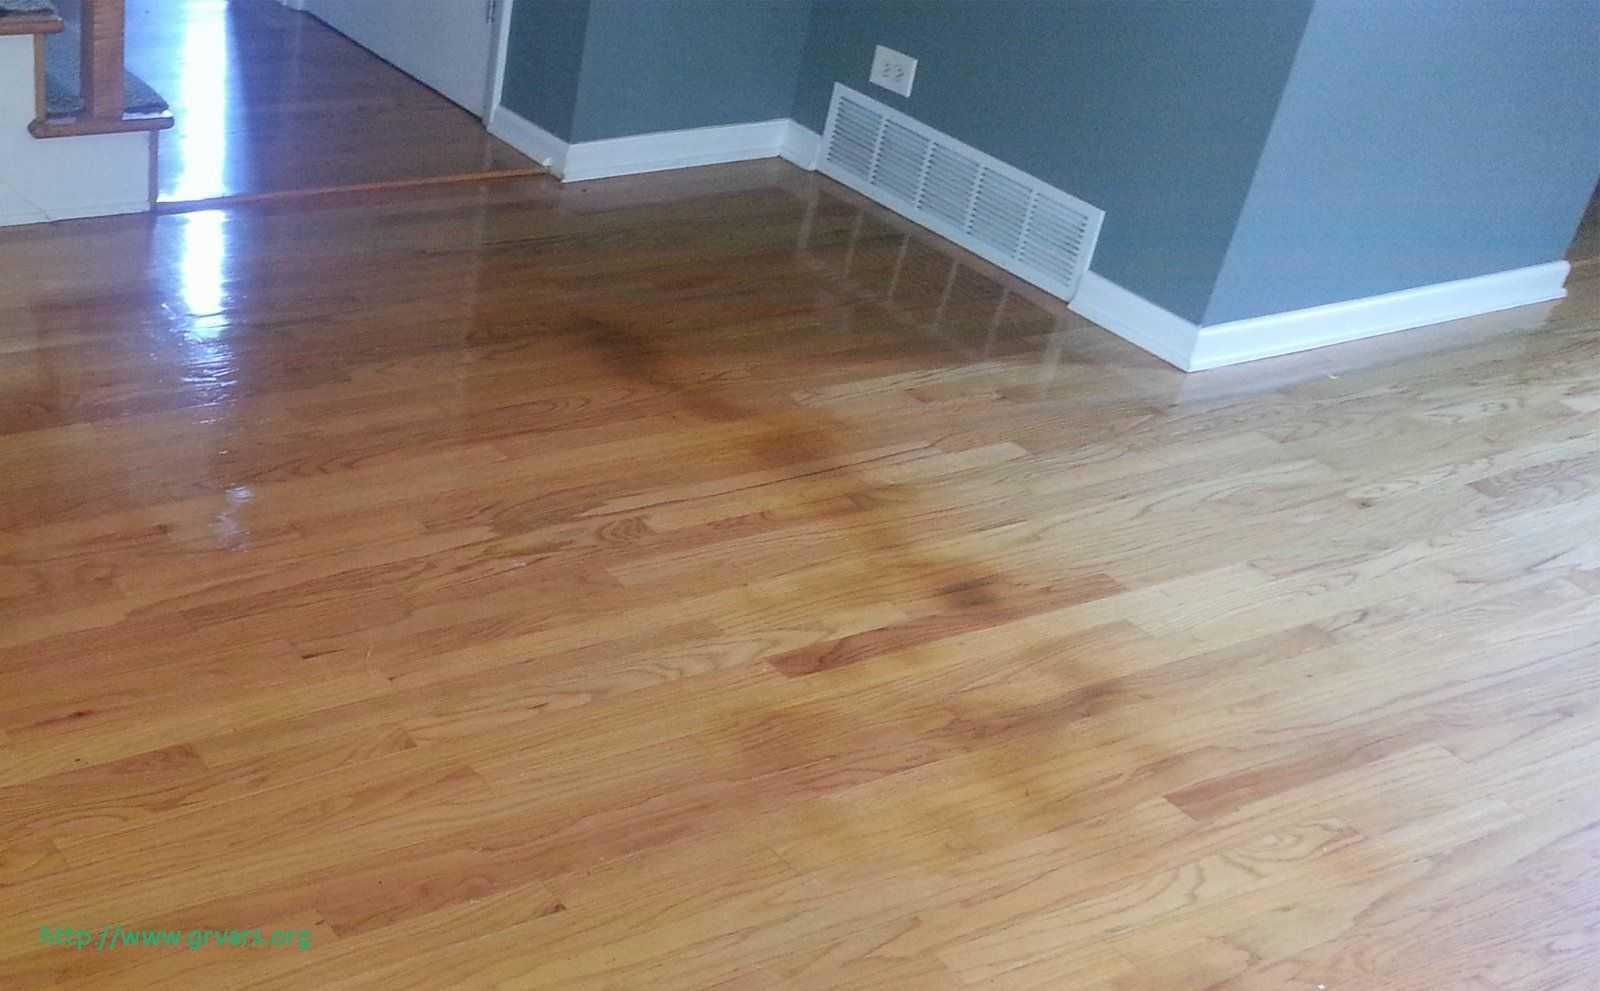 Best Vapor Barrier for Hardwood Floors Of 15 Beau Moisture Barrier Laminate Flooring On Concrete Ideas Blog with Regard to 15 Photos Of the 15 Beau Moisture Barrier Laminate Flooring On Concrete